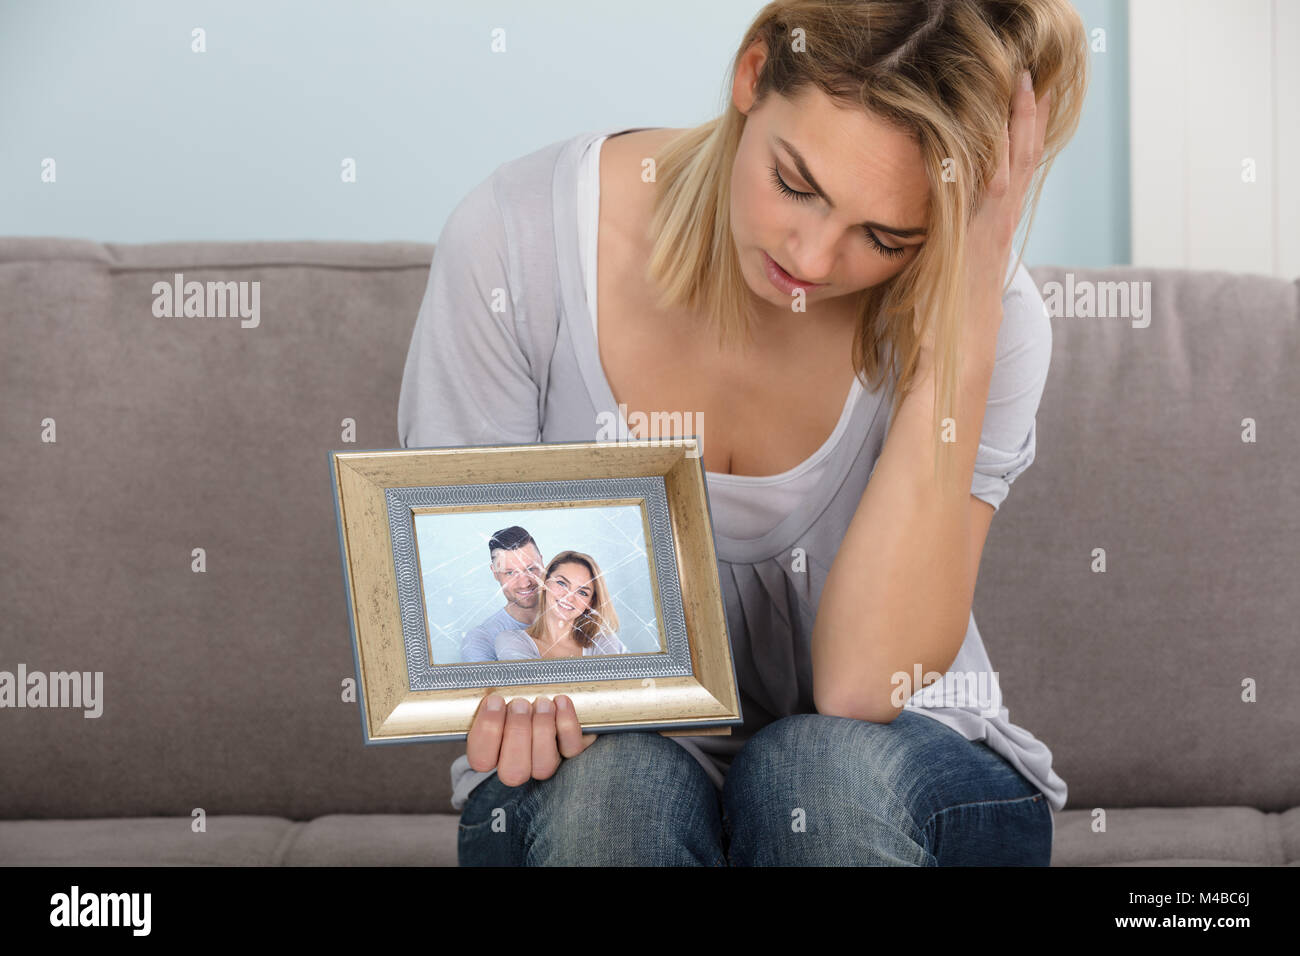 Sad Woman Holding Broken Picture Frame Of Couple In Love Stock Photo